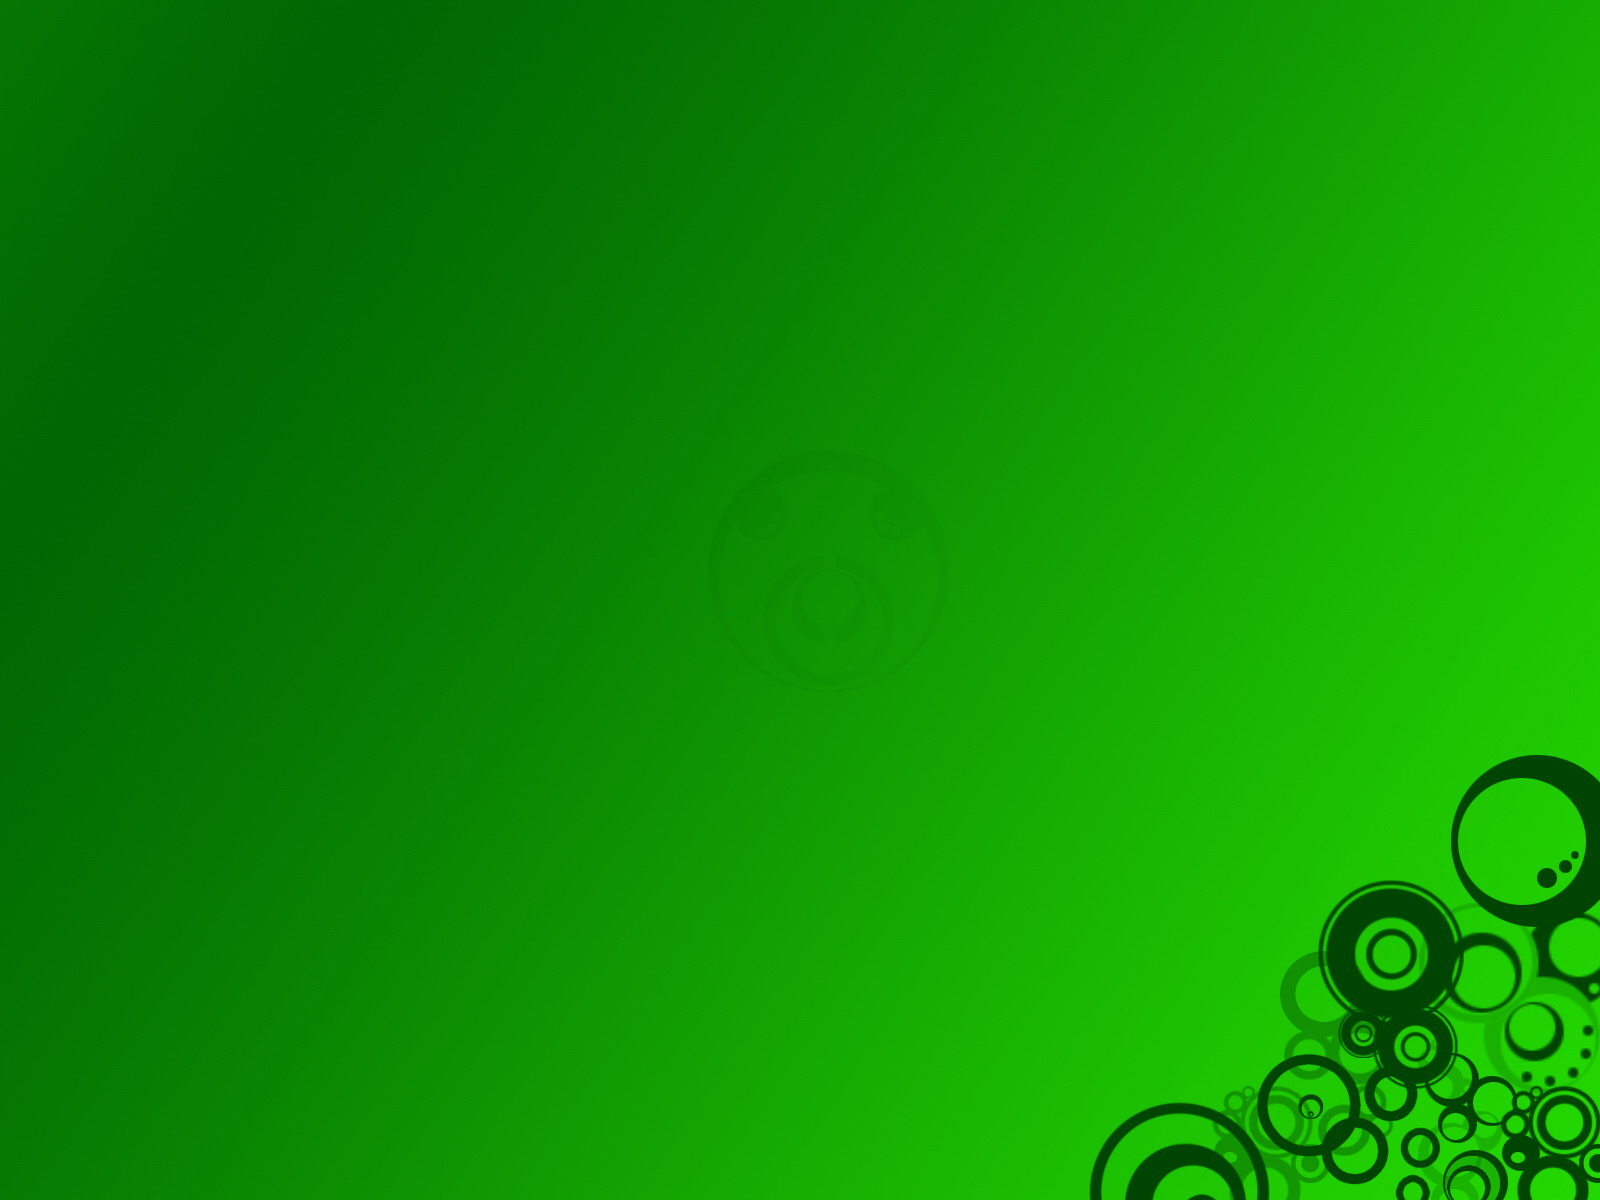 Place For HD Wallpapers Desktop Wallpapers Green Wallpapers 1600x1200